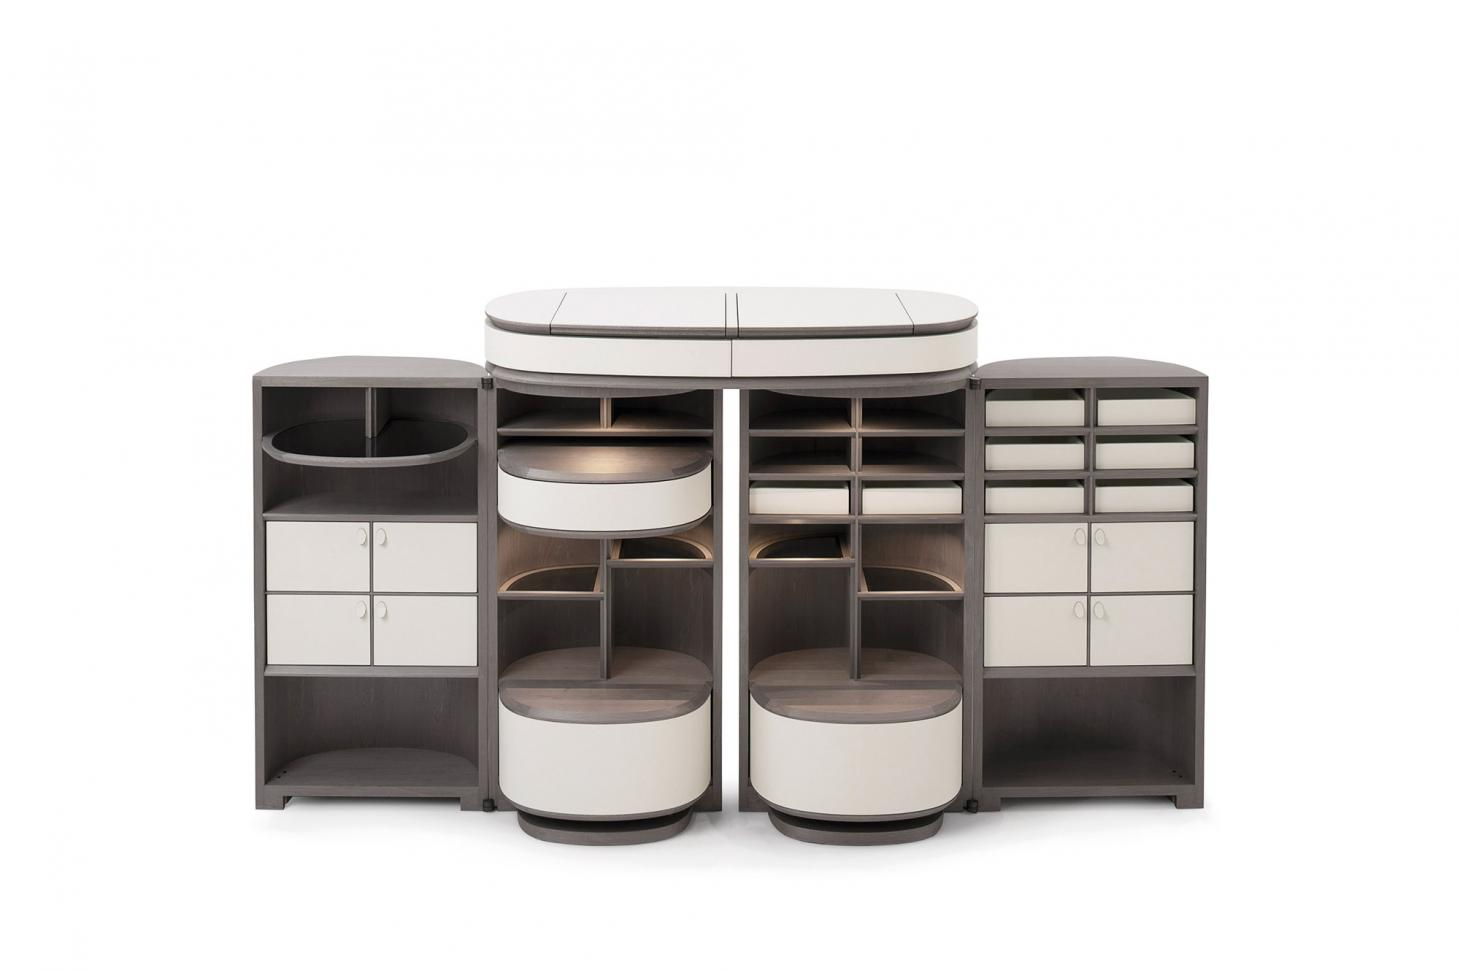 A large drinks cabinet with four compartments, each featuring shelves and drawings, in grey and white